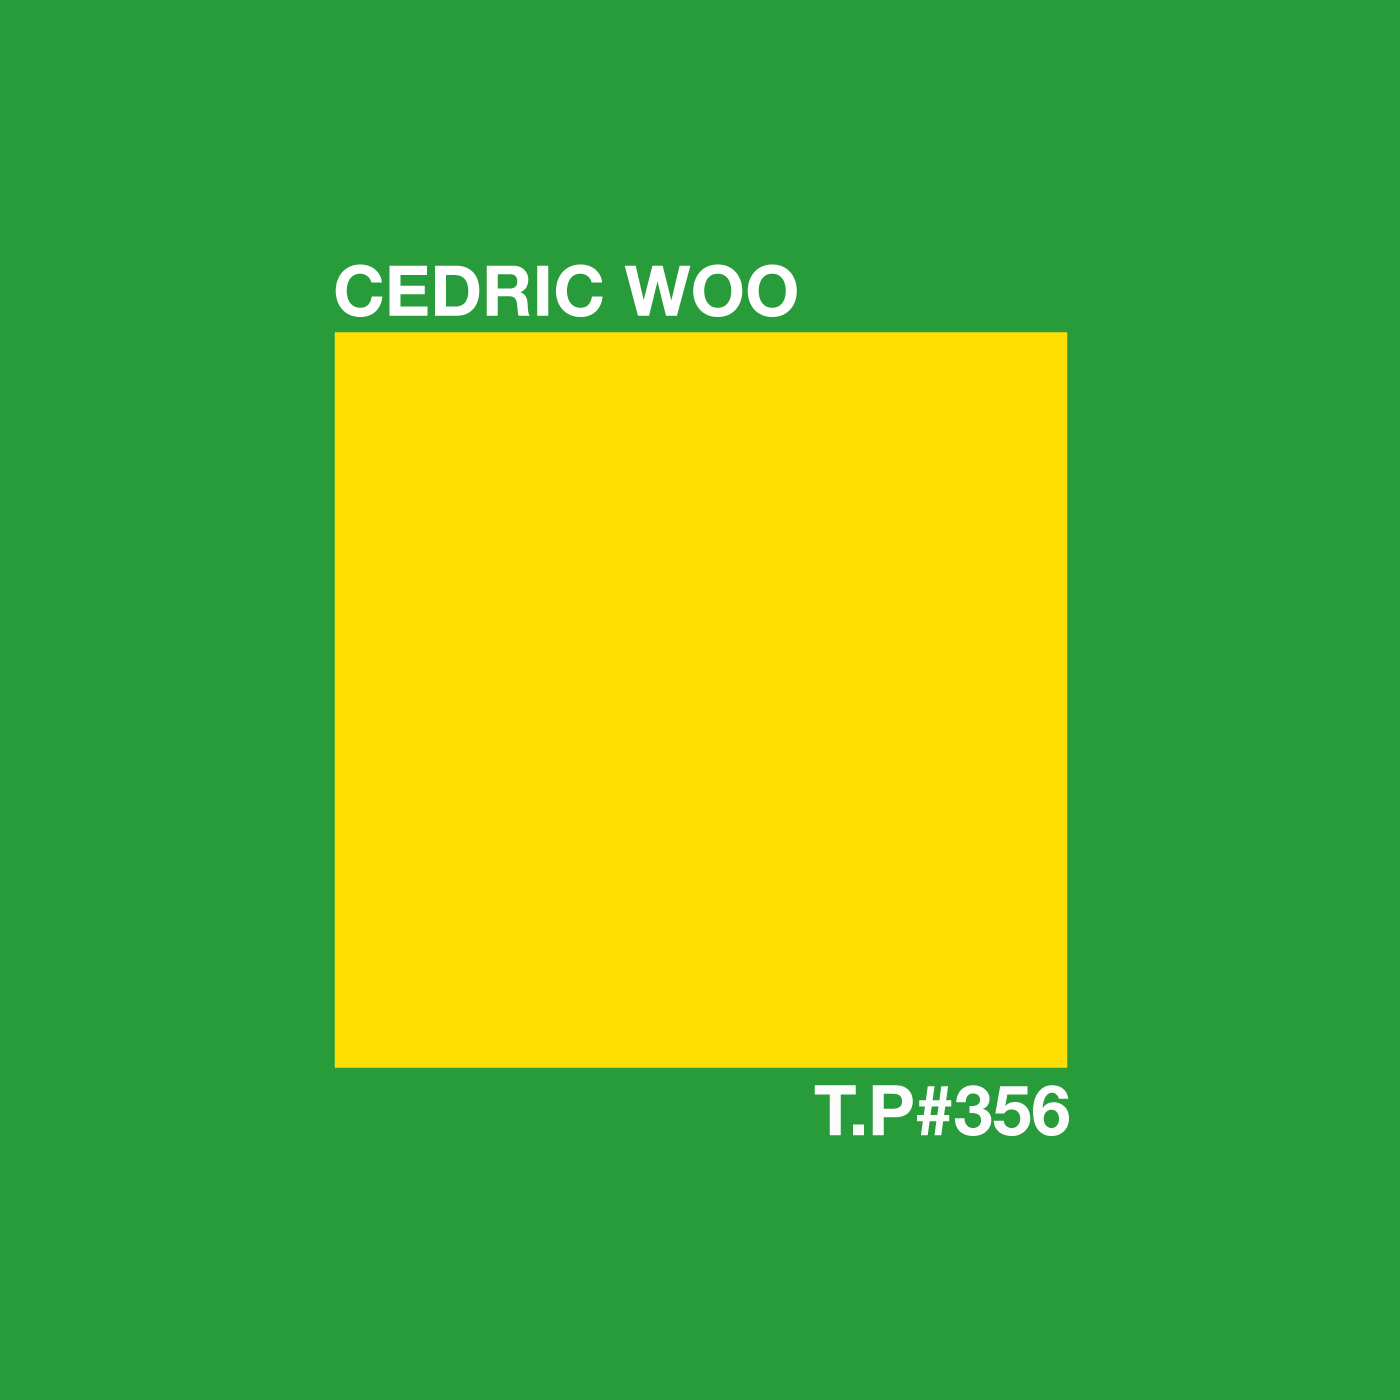 Cedric Woo, Brazilian, Mix, Test Pressing, World Cup, Business